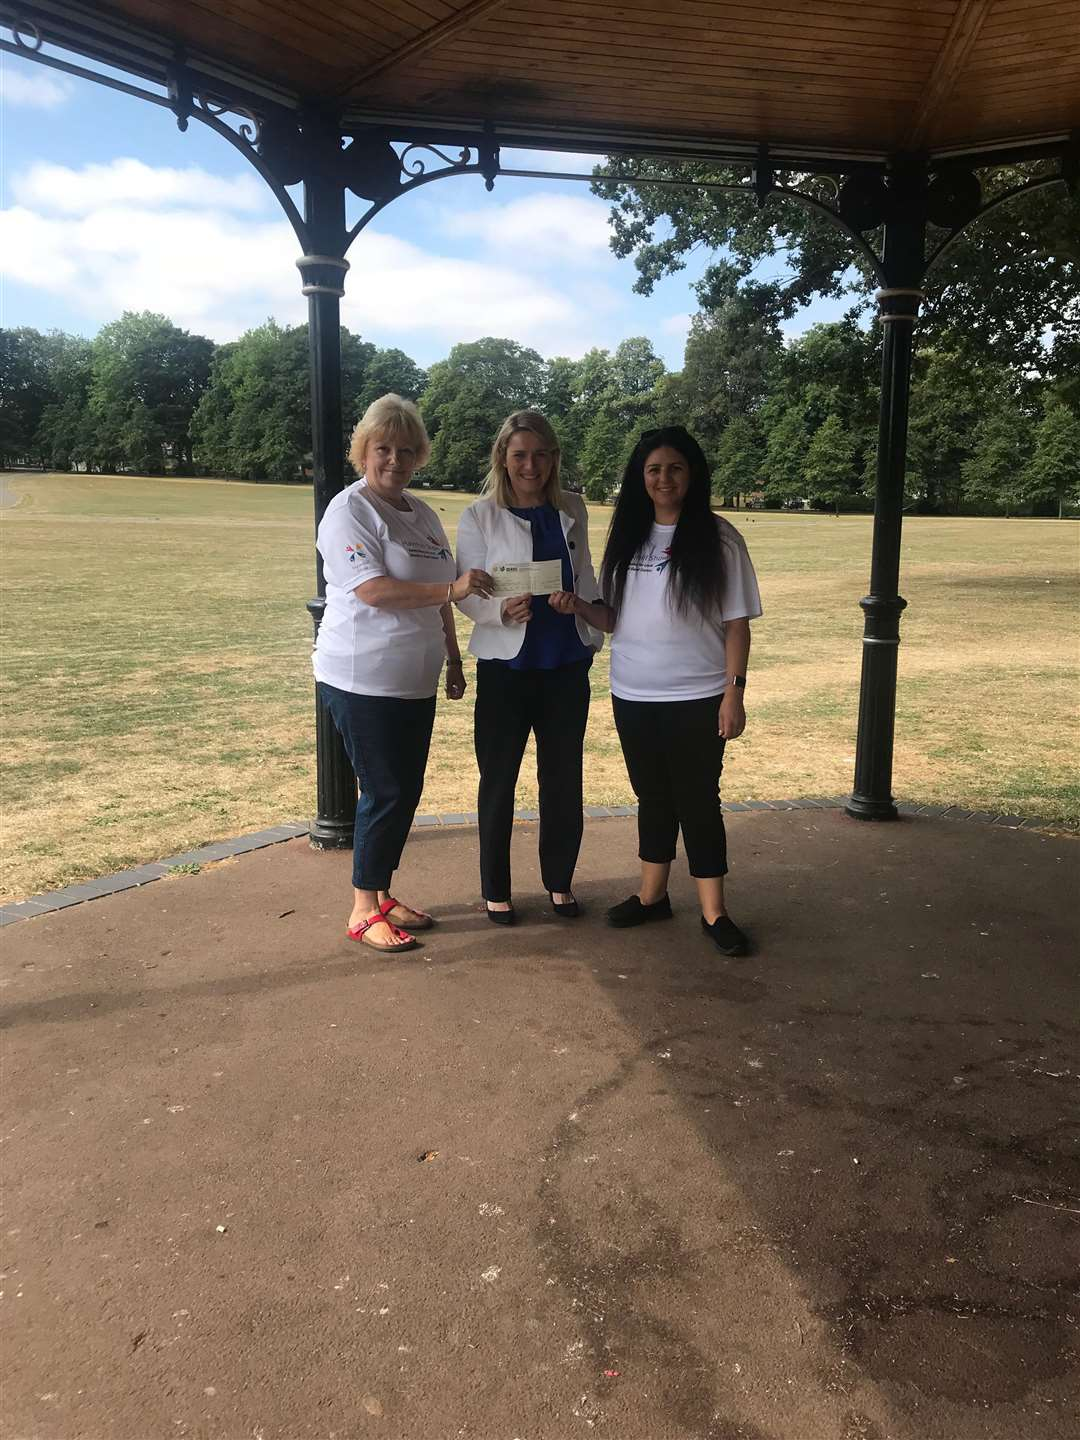 Verity McMahon, head of land at Persimmon Homes Suffolk (centre), presents Community Champions funding to Haverhill Show committee members Kelly Bennett and Lisa Mason (right). (3180036)